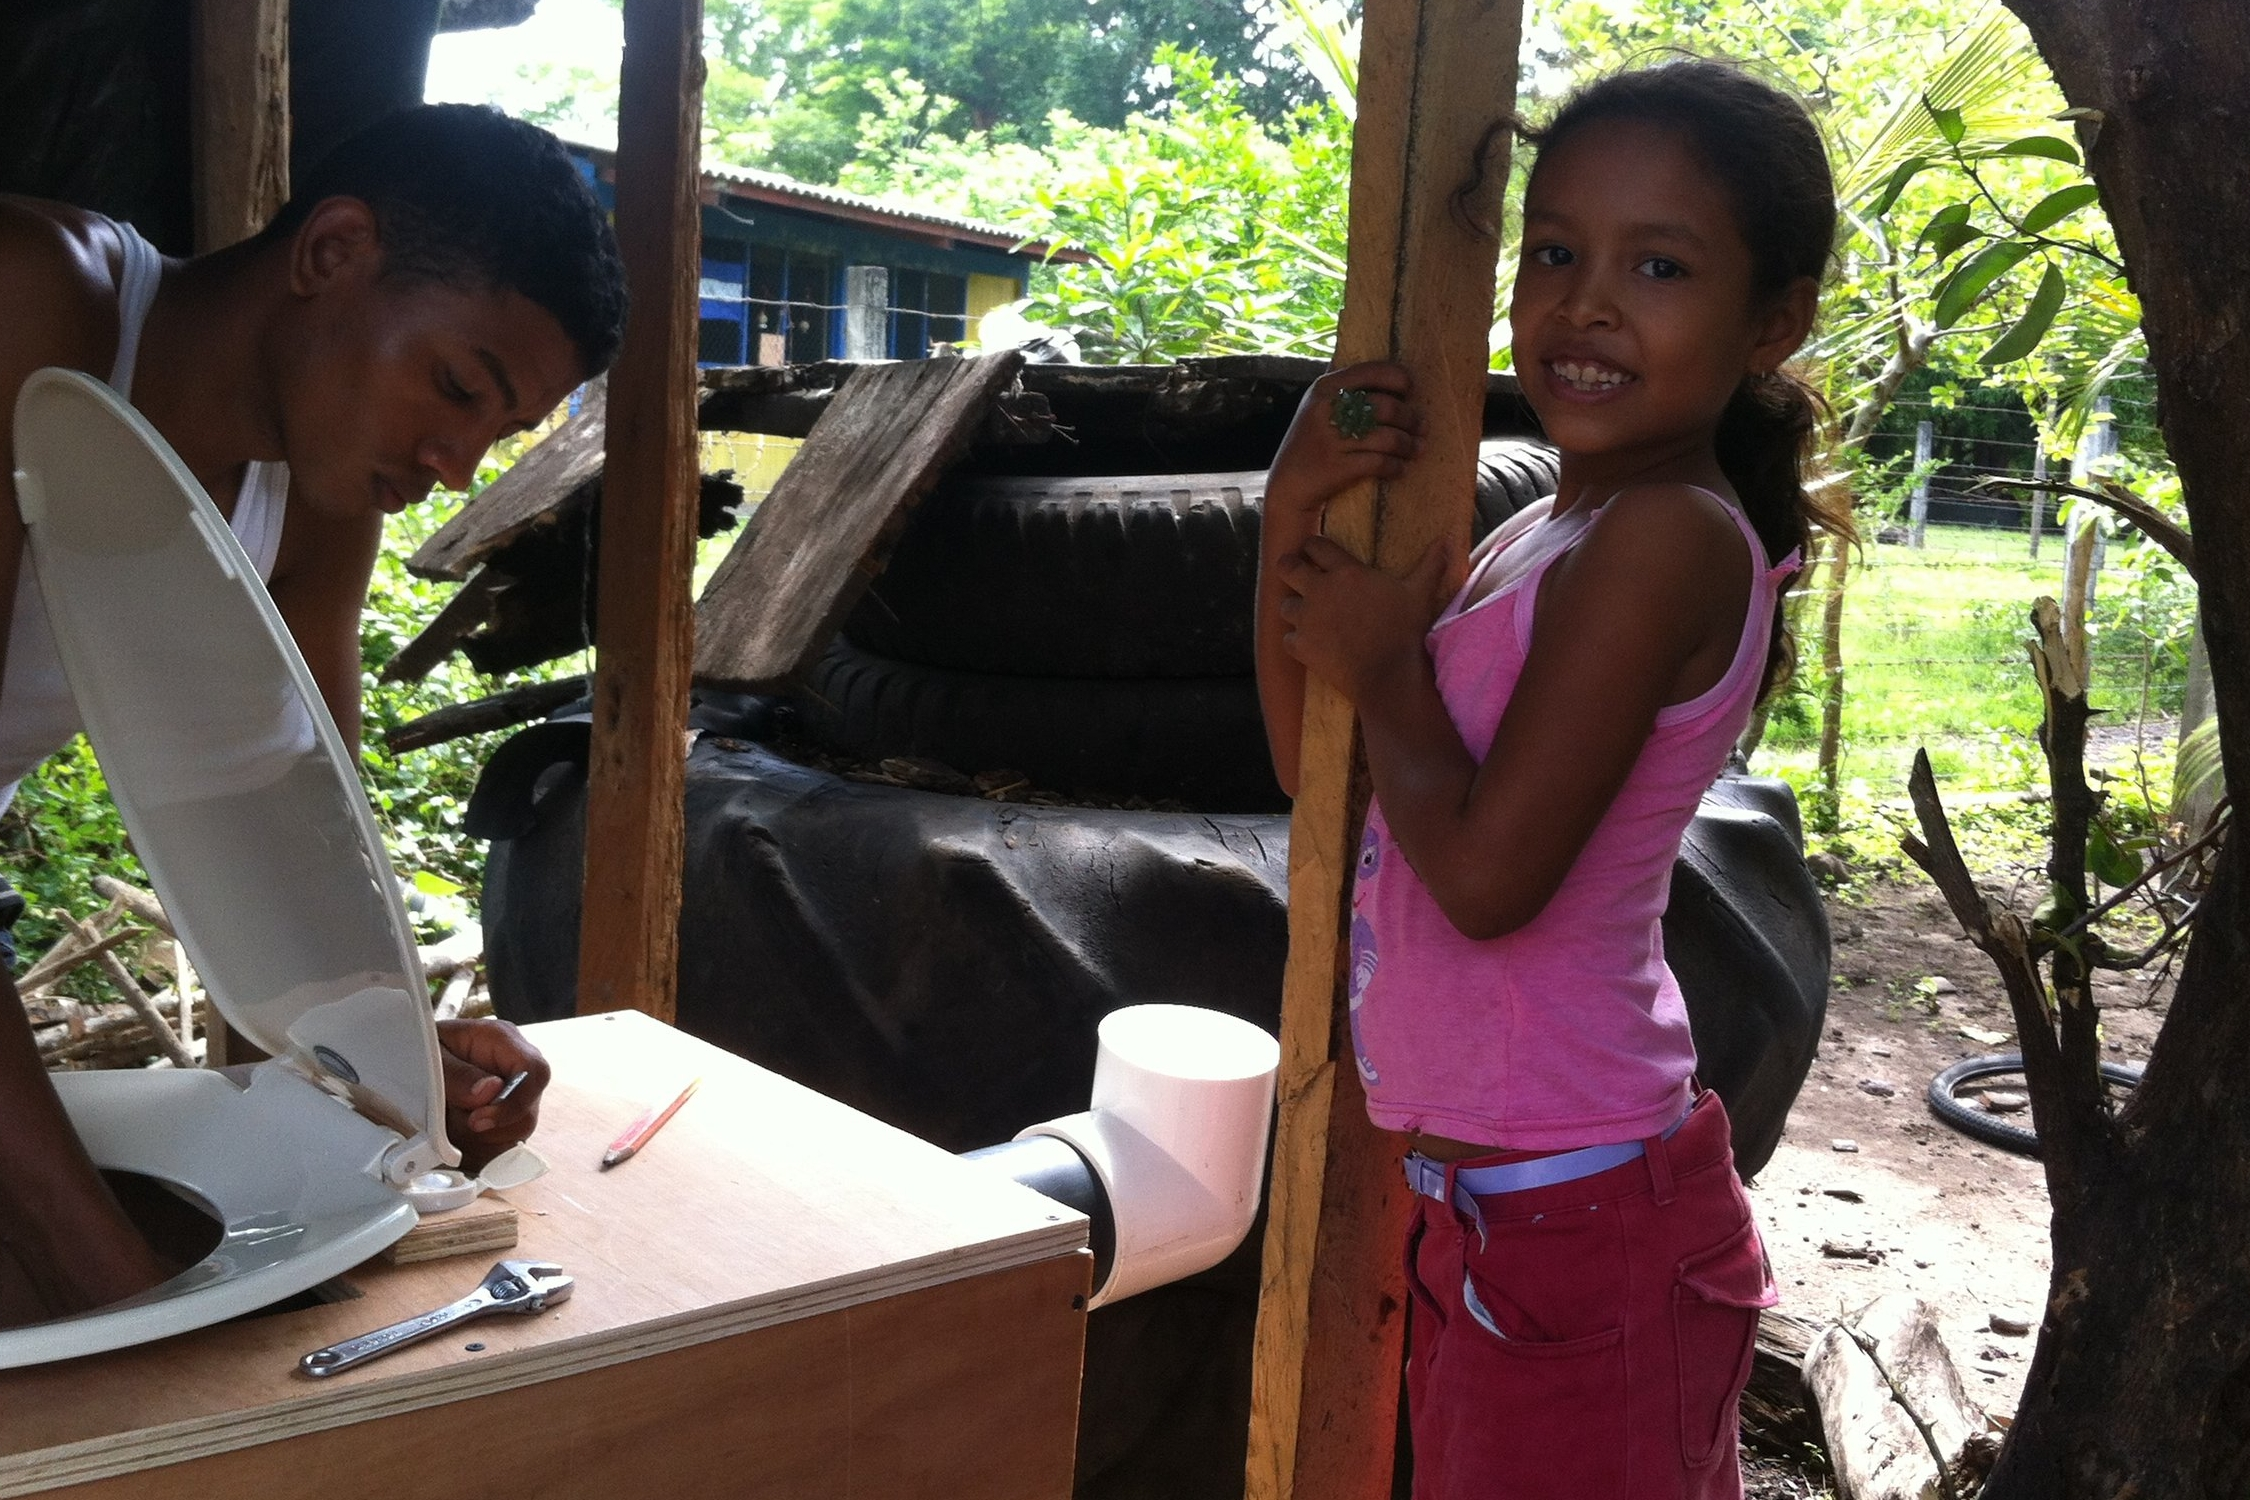 La Palma, Nicaragua - In 2014 TFP, along with local craftsmen and our NGO partner El Porvenir, installed 3 composting toilets for 3 local families.